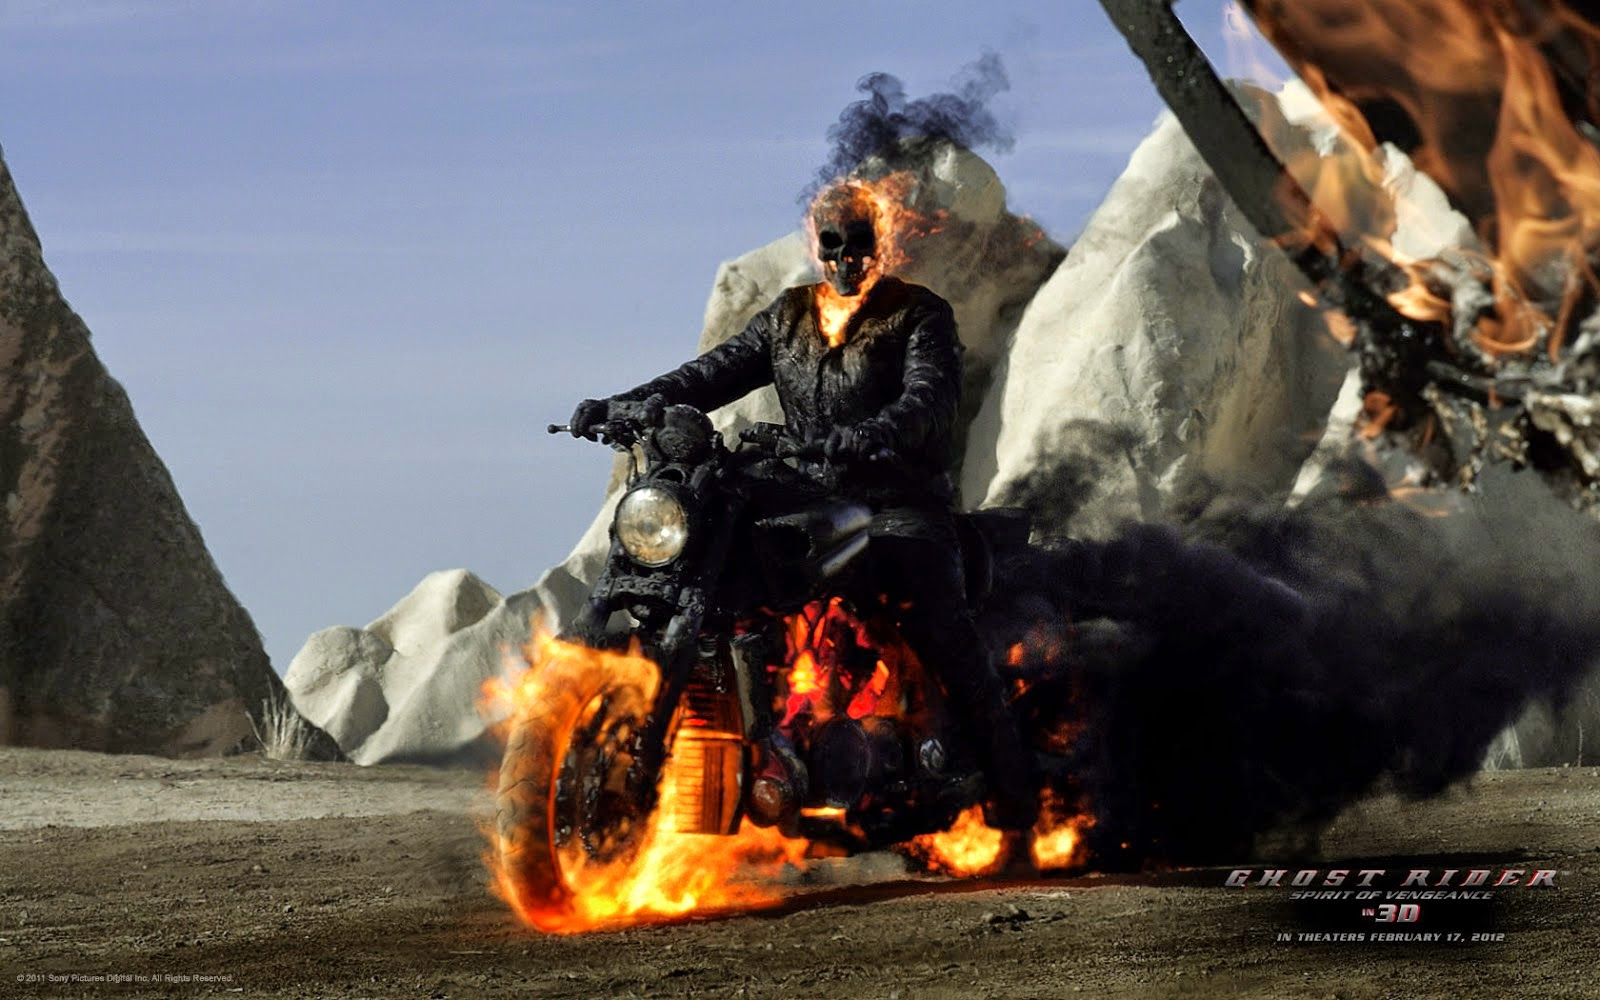 ghost rider hd wallpapers free download hd wallpapers